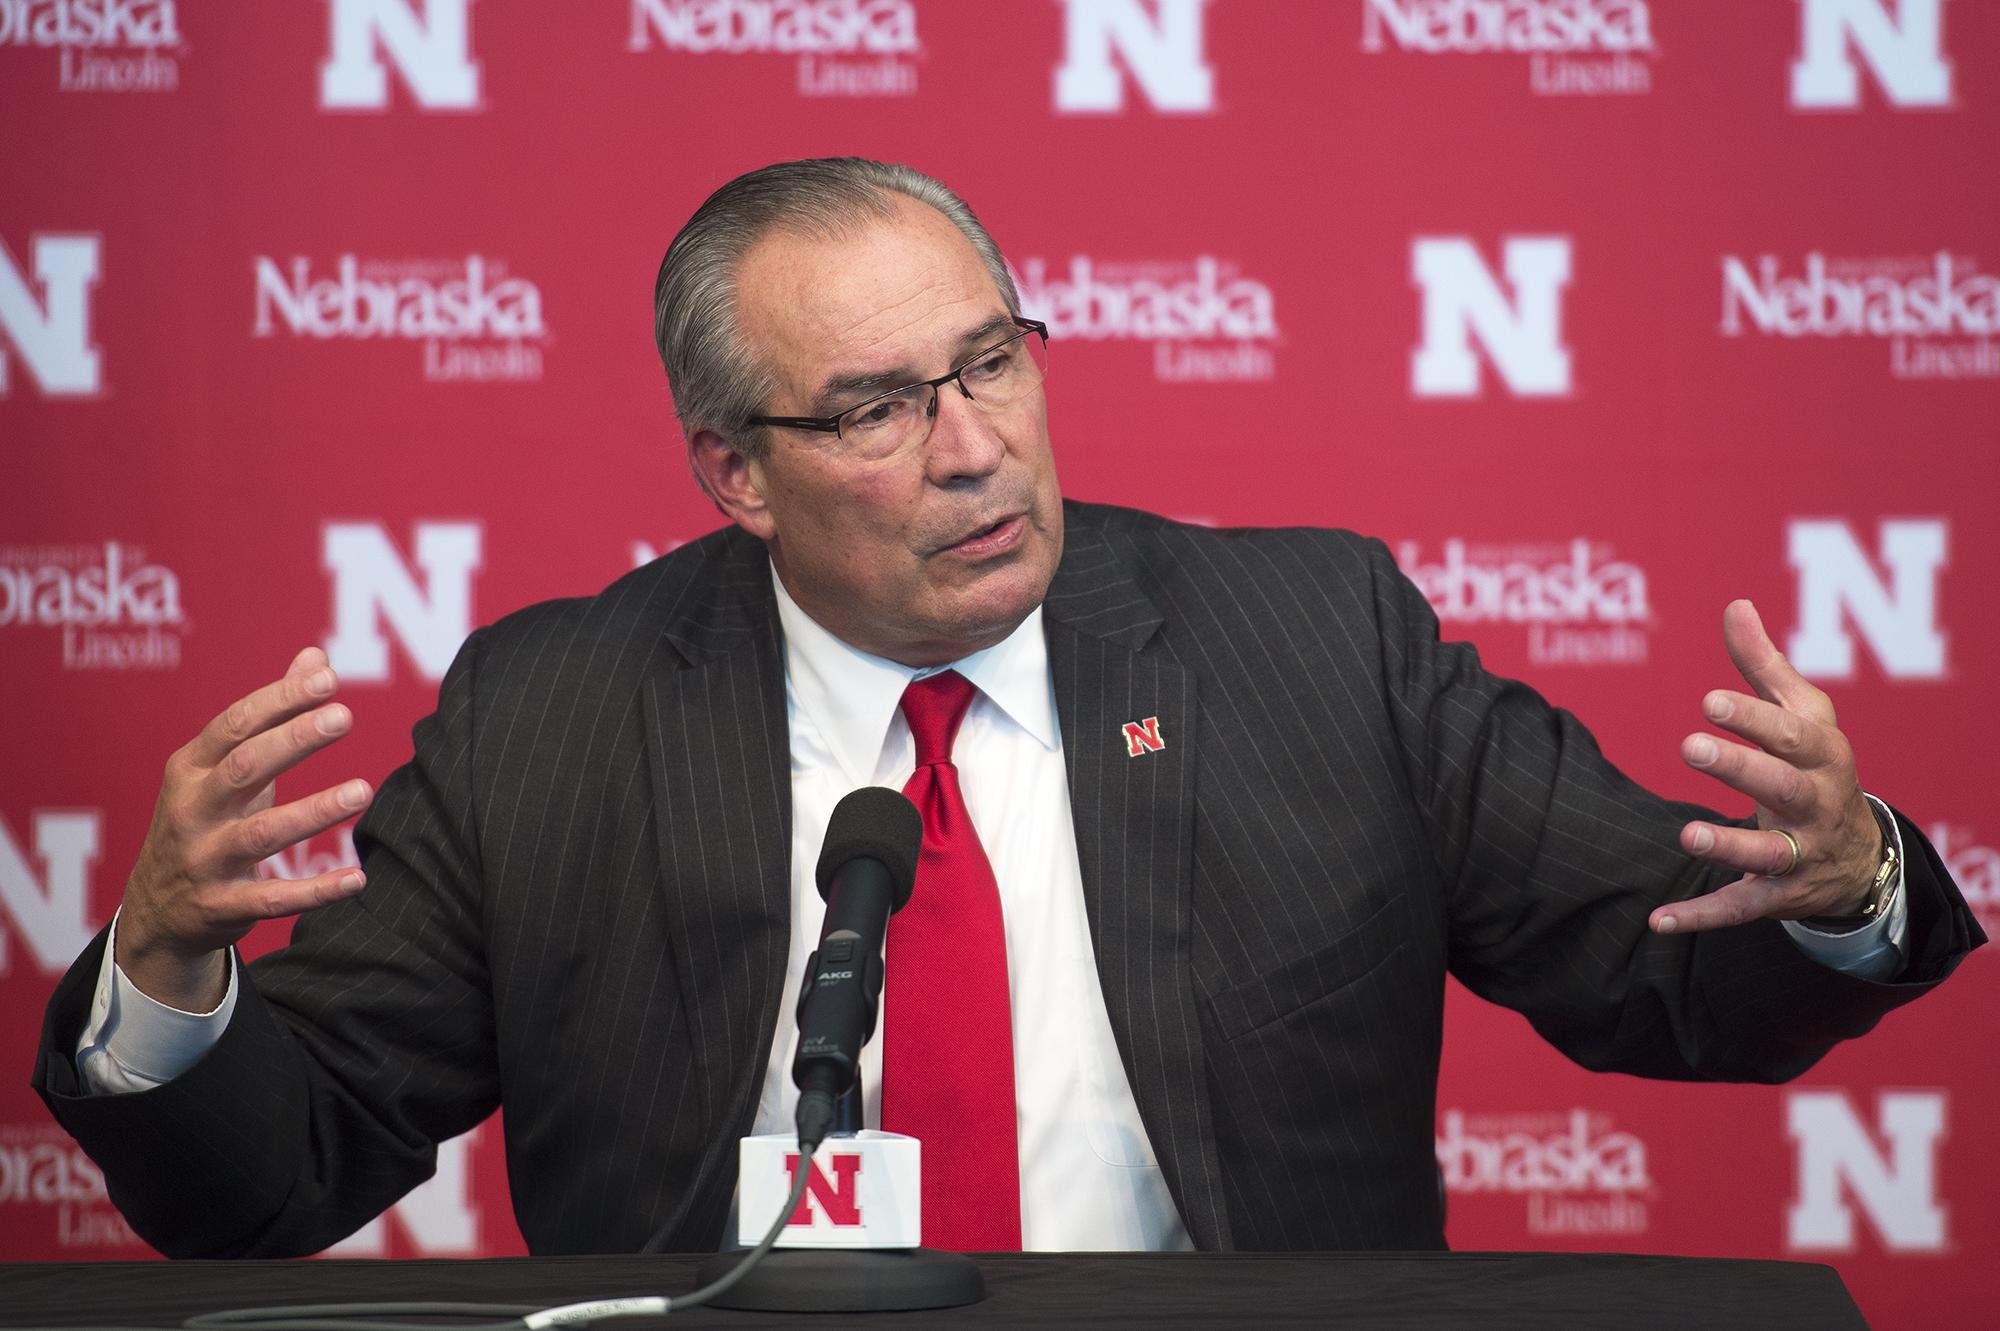 August - Bill Moos UNL Athletic Director